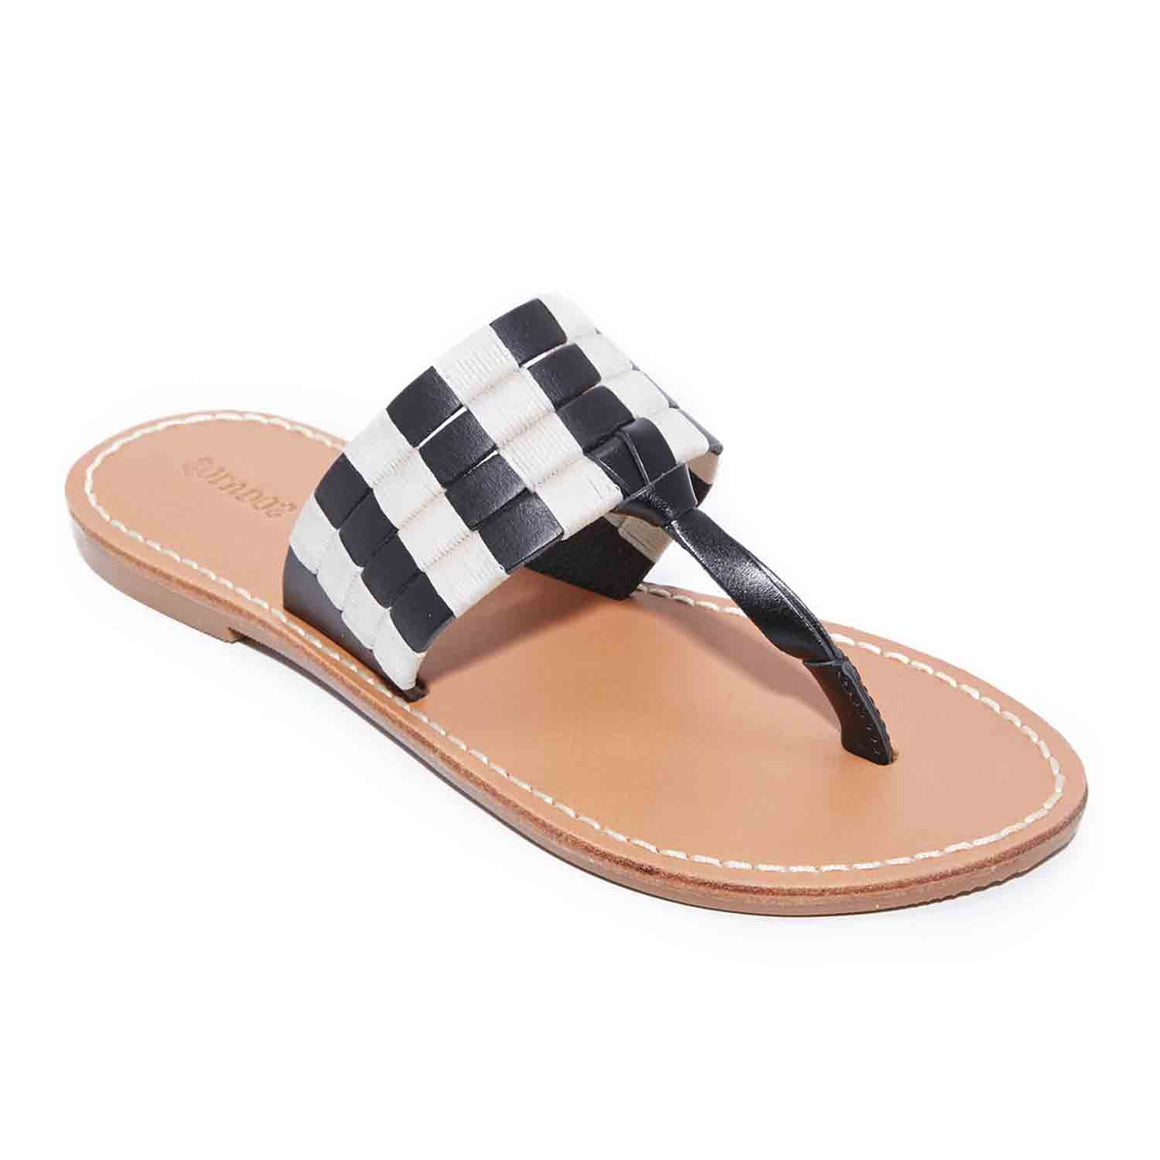 SOLUDOS MULTI BAND THONG SLIDE BLACK